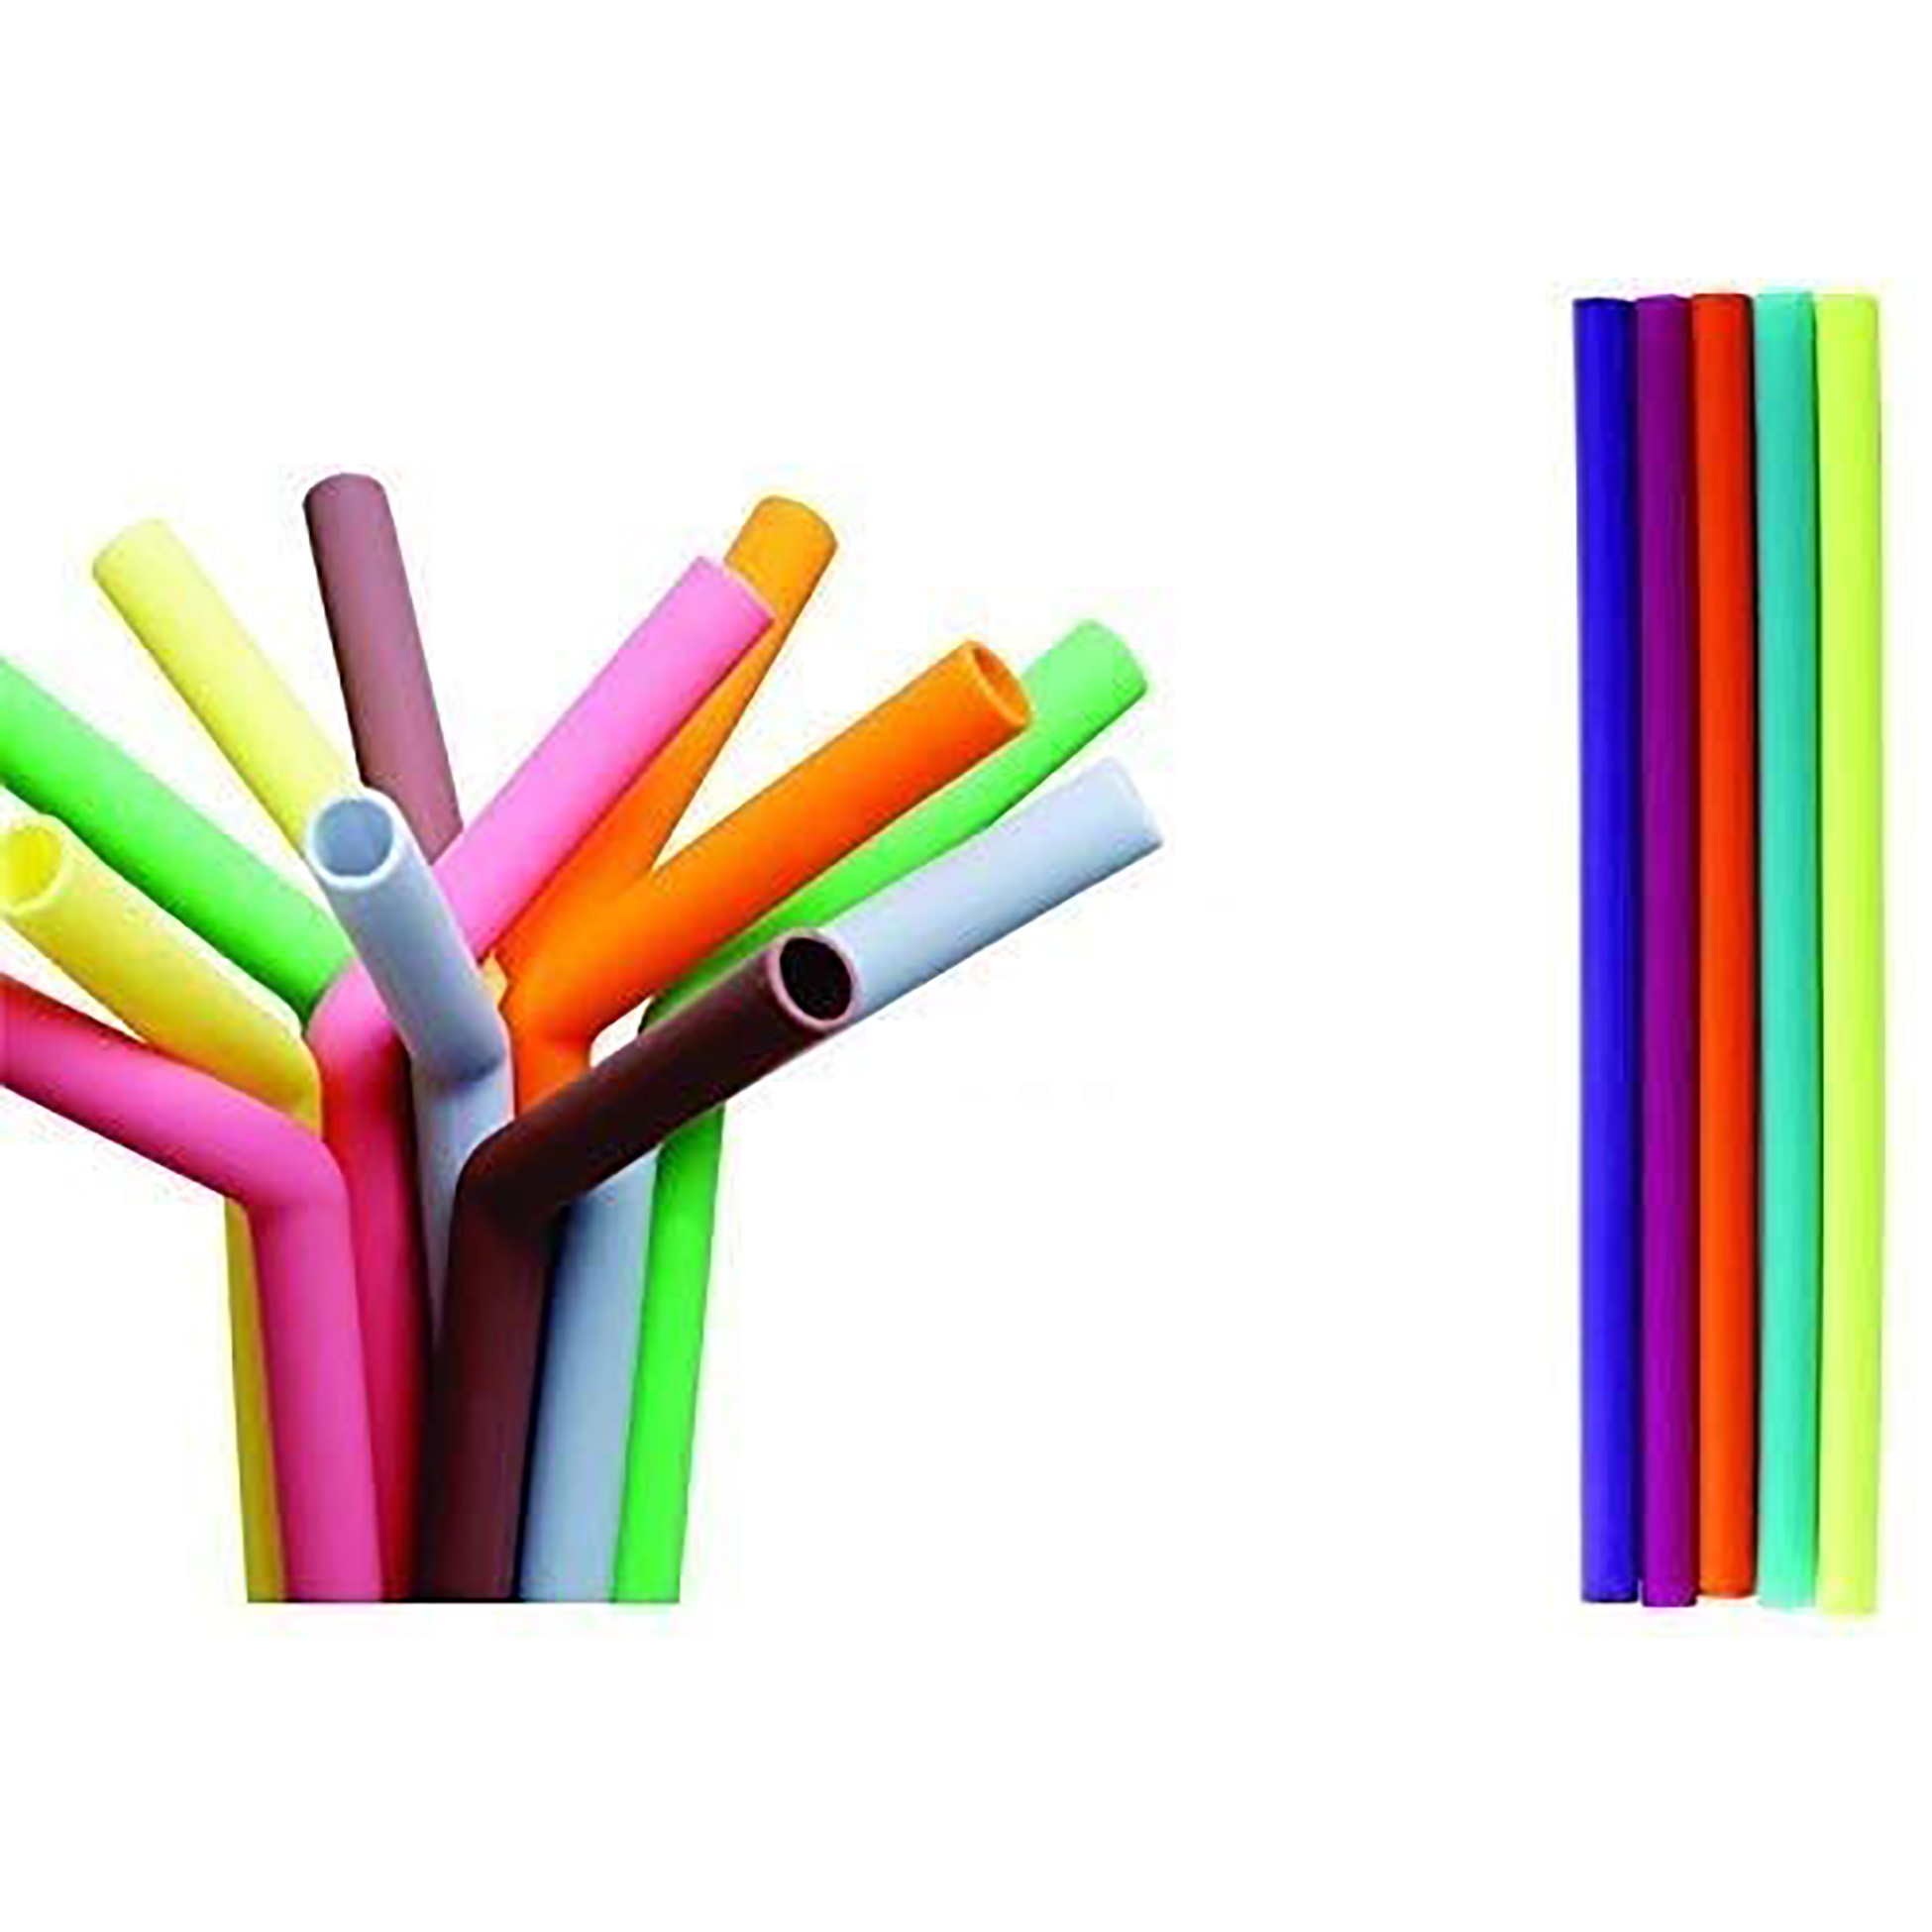 iLife | iLife Reusable Smoothie Straws Long Extra Wide Fat Silicone Straws for Drinking Bubble Tea, Milkshakes, Set of 6 with Cleaning Brush (Big+Small)